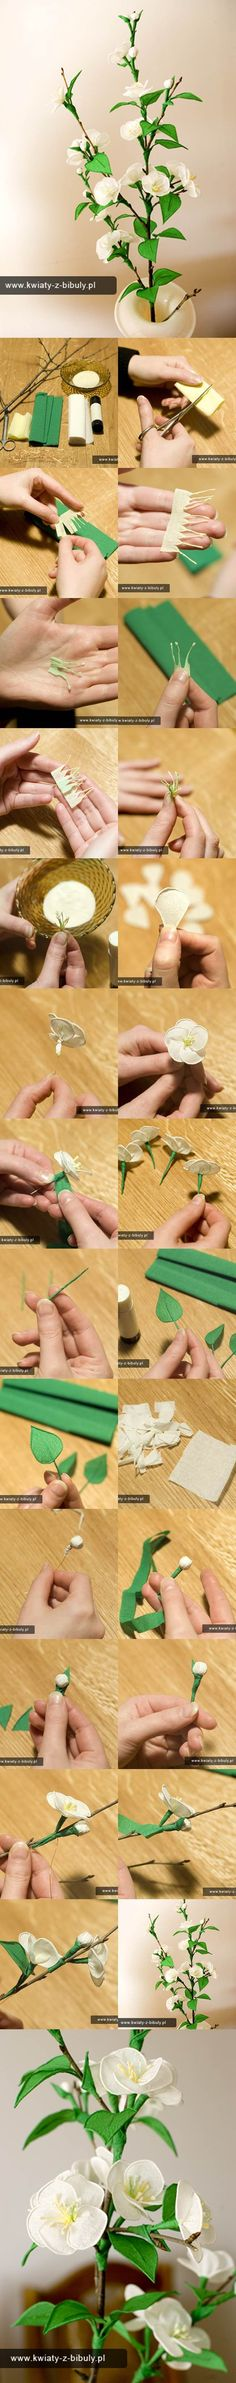 DIY Delicate Crepe Paper Cherry Blossom Sprig www. Fake Flowers, Diy Flowers, Fabric Flowers, Flower Crafts, Flower Art, Blossom Flower, Diy Paper, Paper Crafts, Fleurs Diy